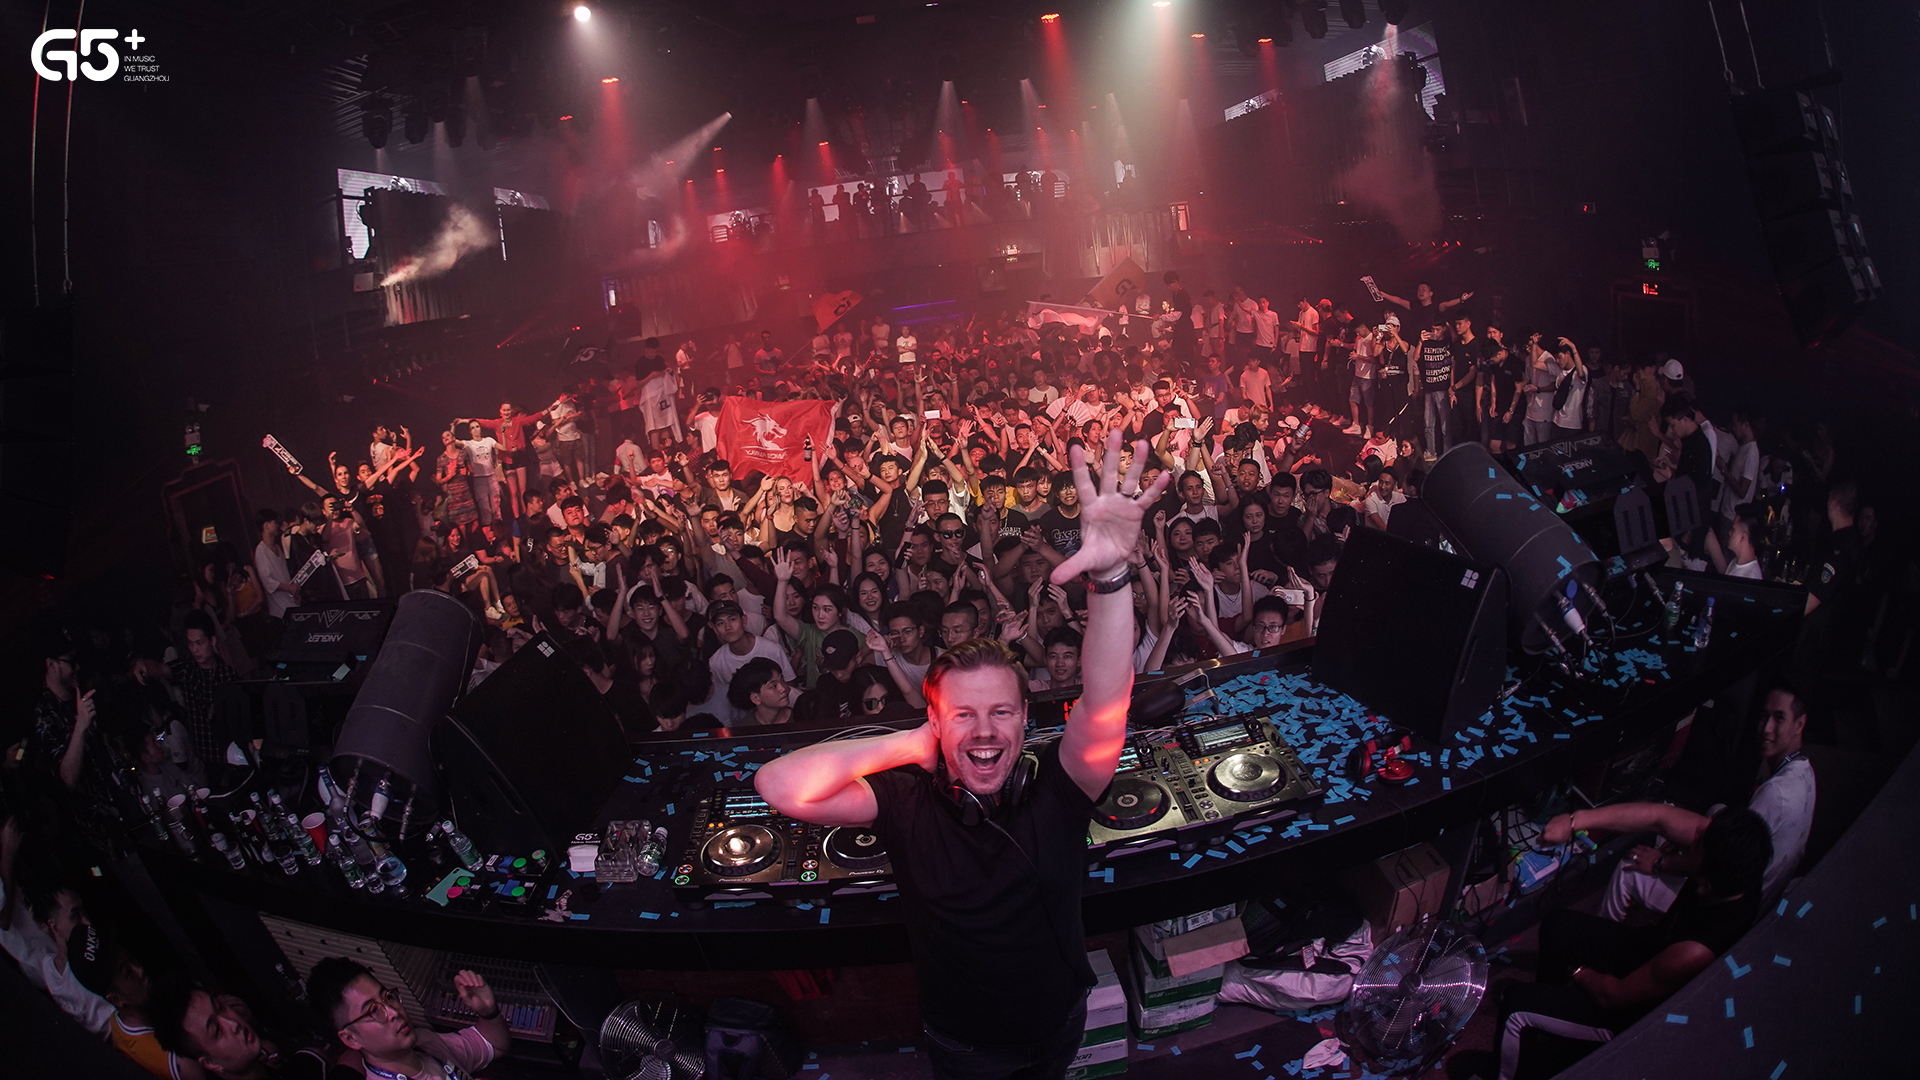 Ferry Corsten a Night for the Books at G5+ Club Guangzhou in China [Event Review]